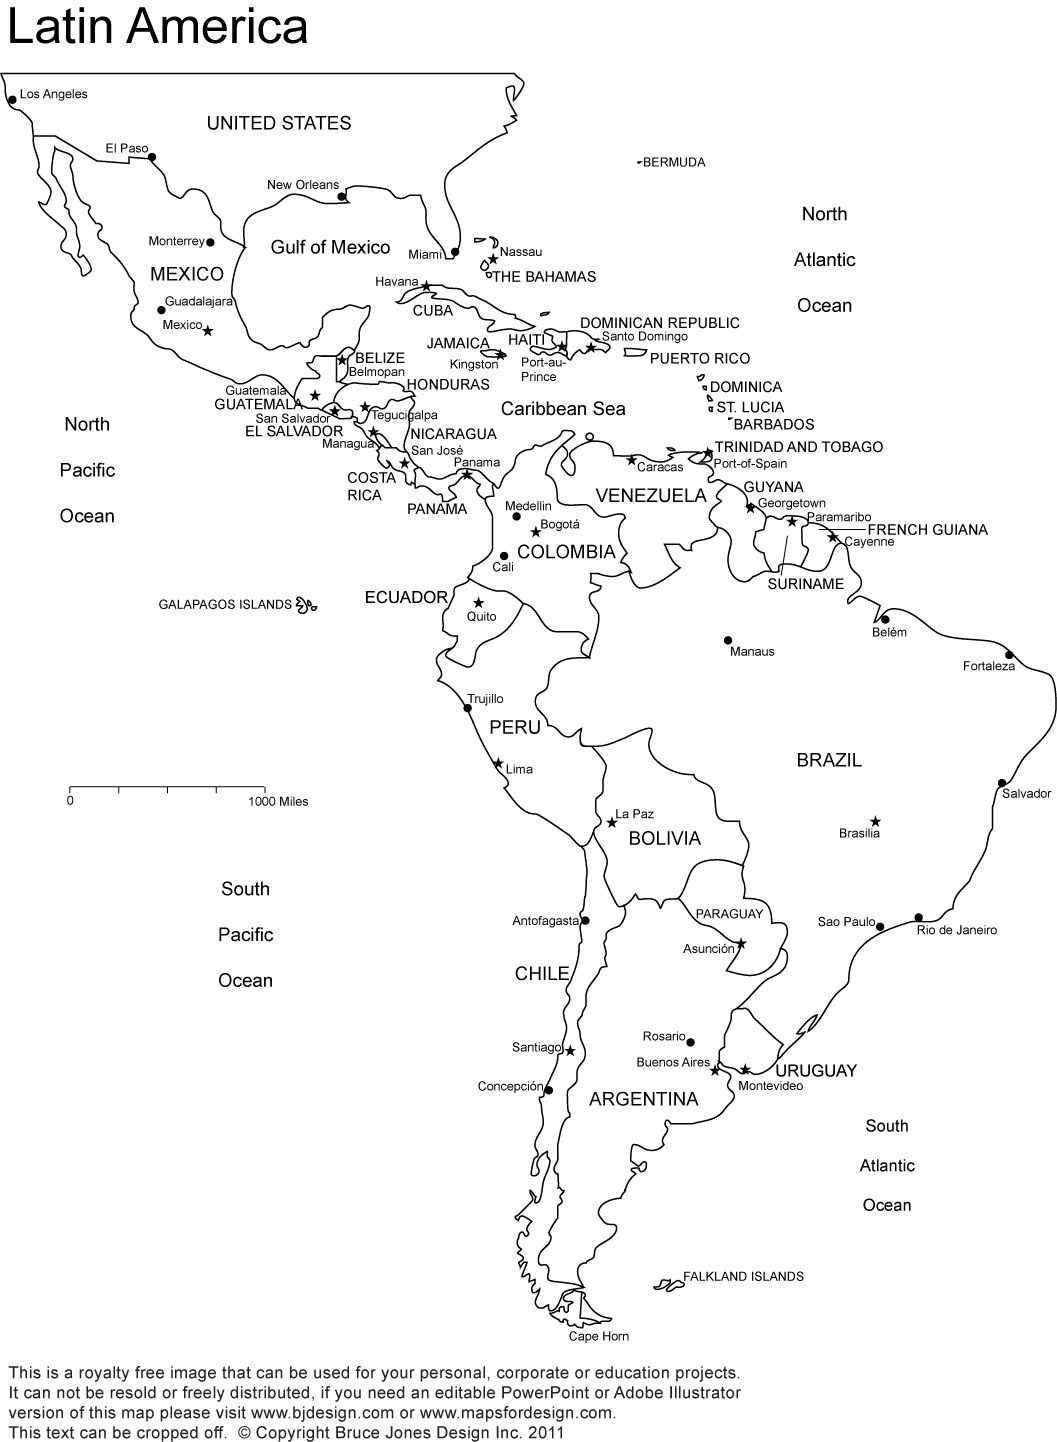 Industries Of Central America Map Printable 10 13 Ybonlineacess De